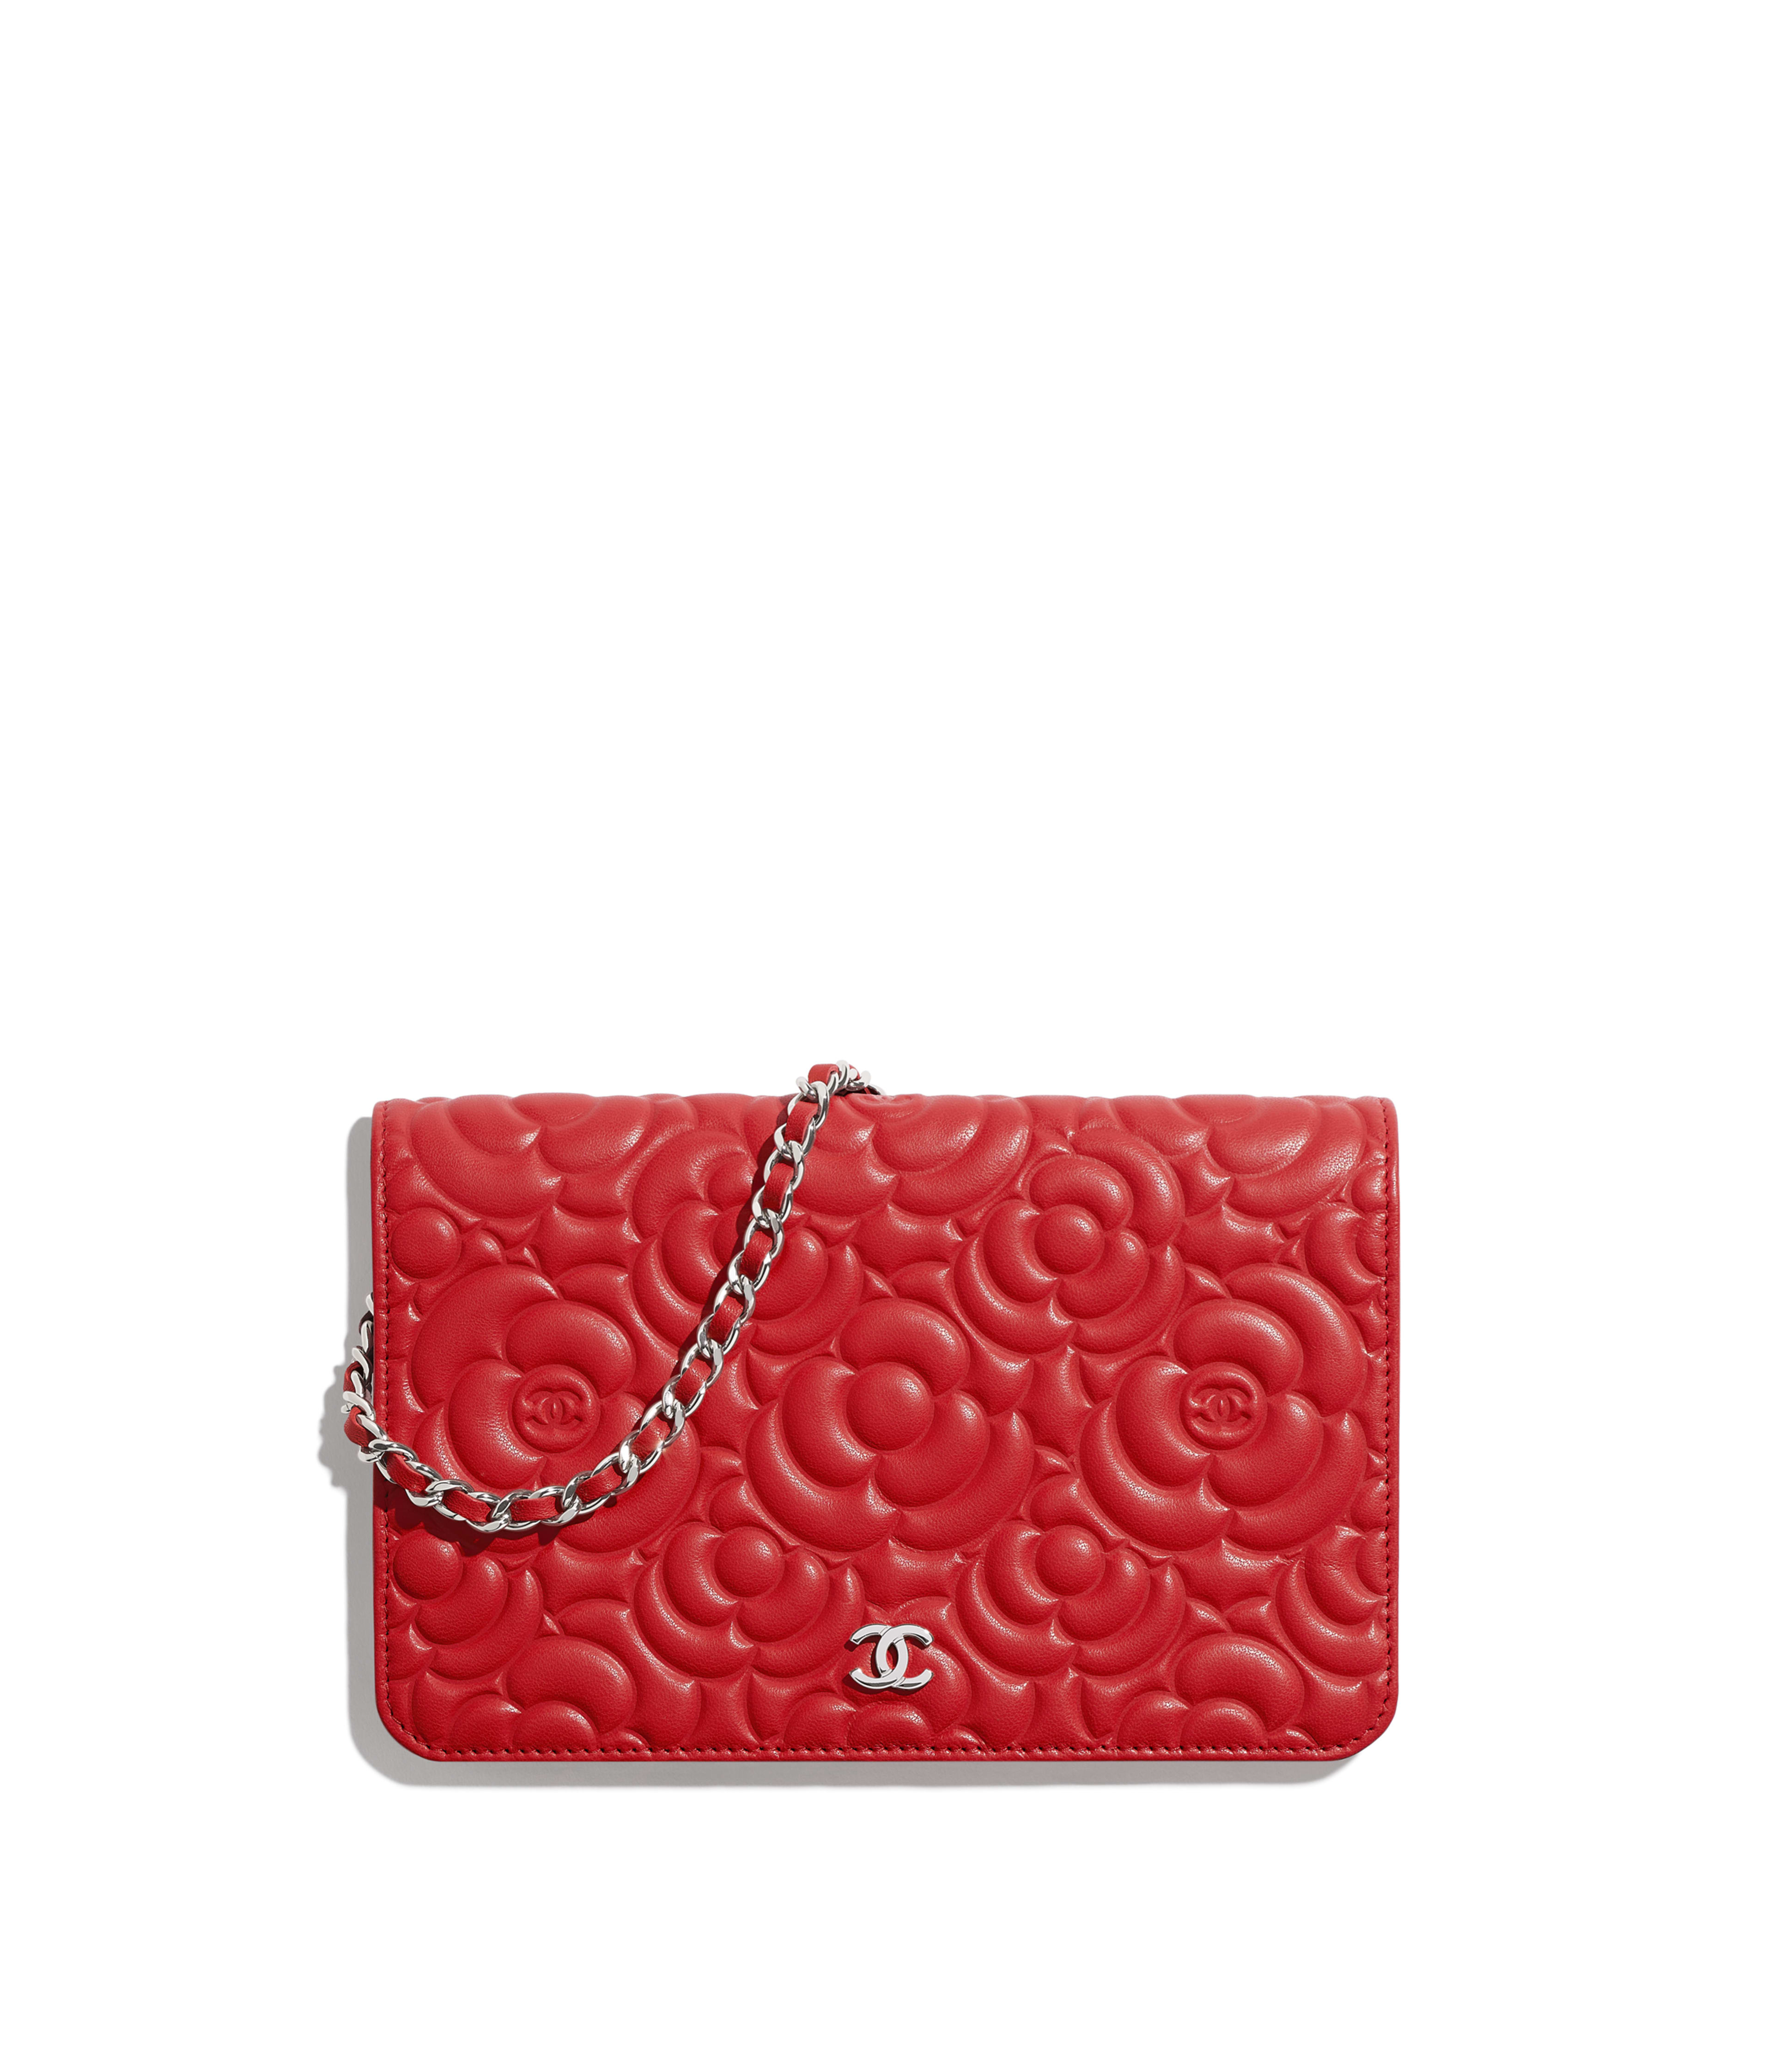 57c8790986b3 Wallet on Chain Lambskin & Silver-Tone Metal, Red Ref. A82336B00077N0413